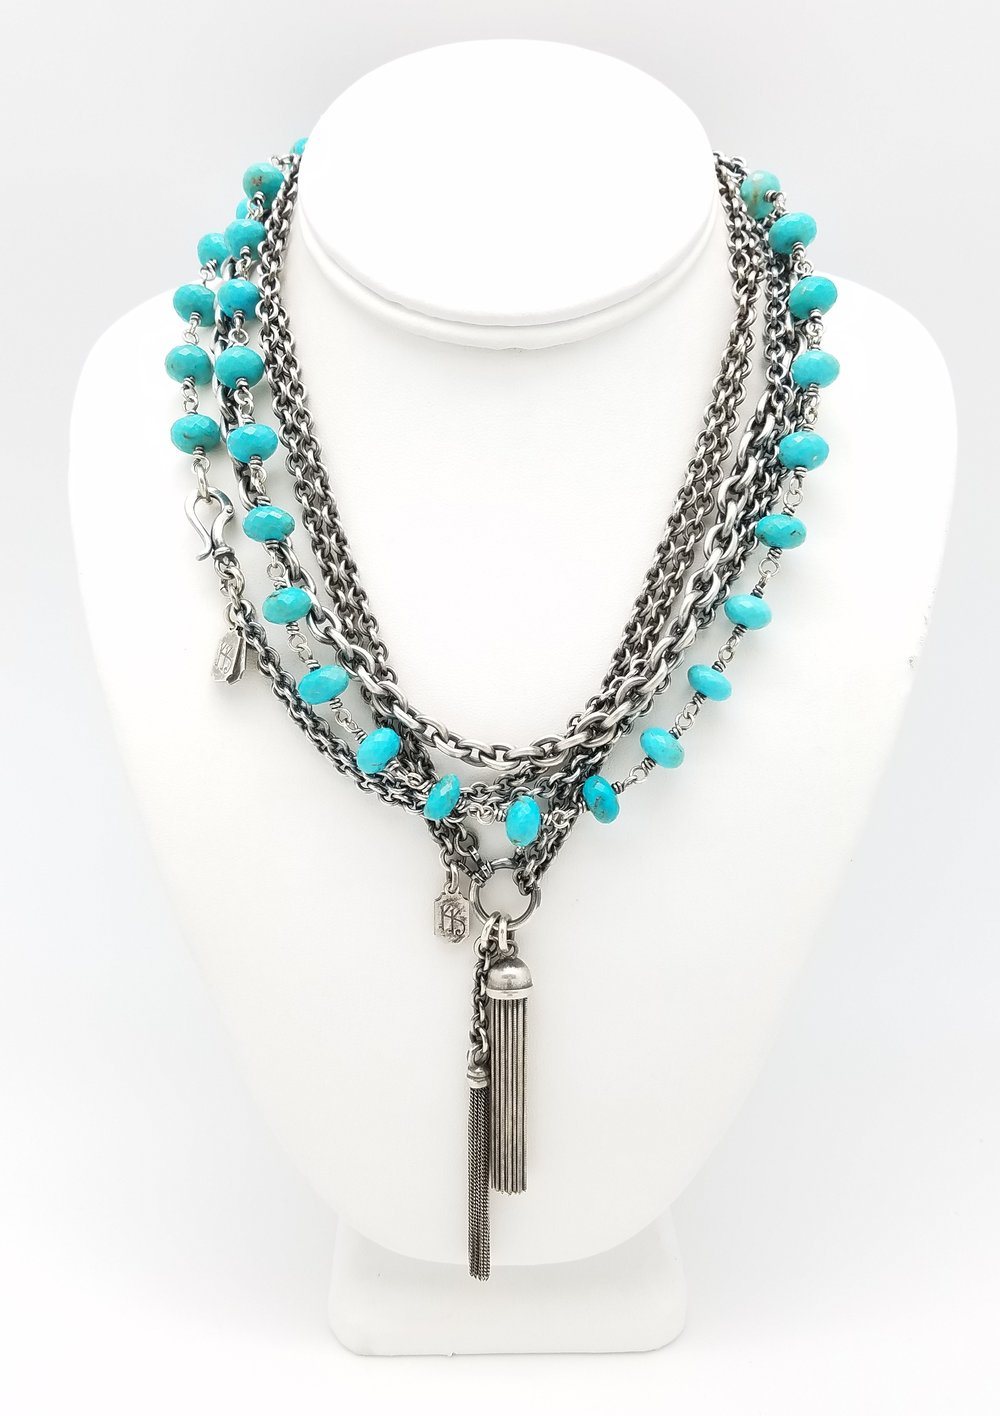 I have many pieces available this year as well as some great sale items. Take a look at the Kary Kjesbo Designs Signature Line necklaces with tassels and turquoise